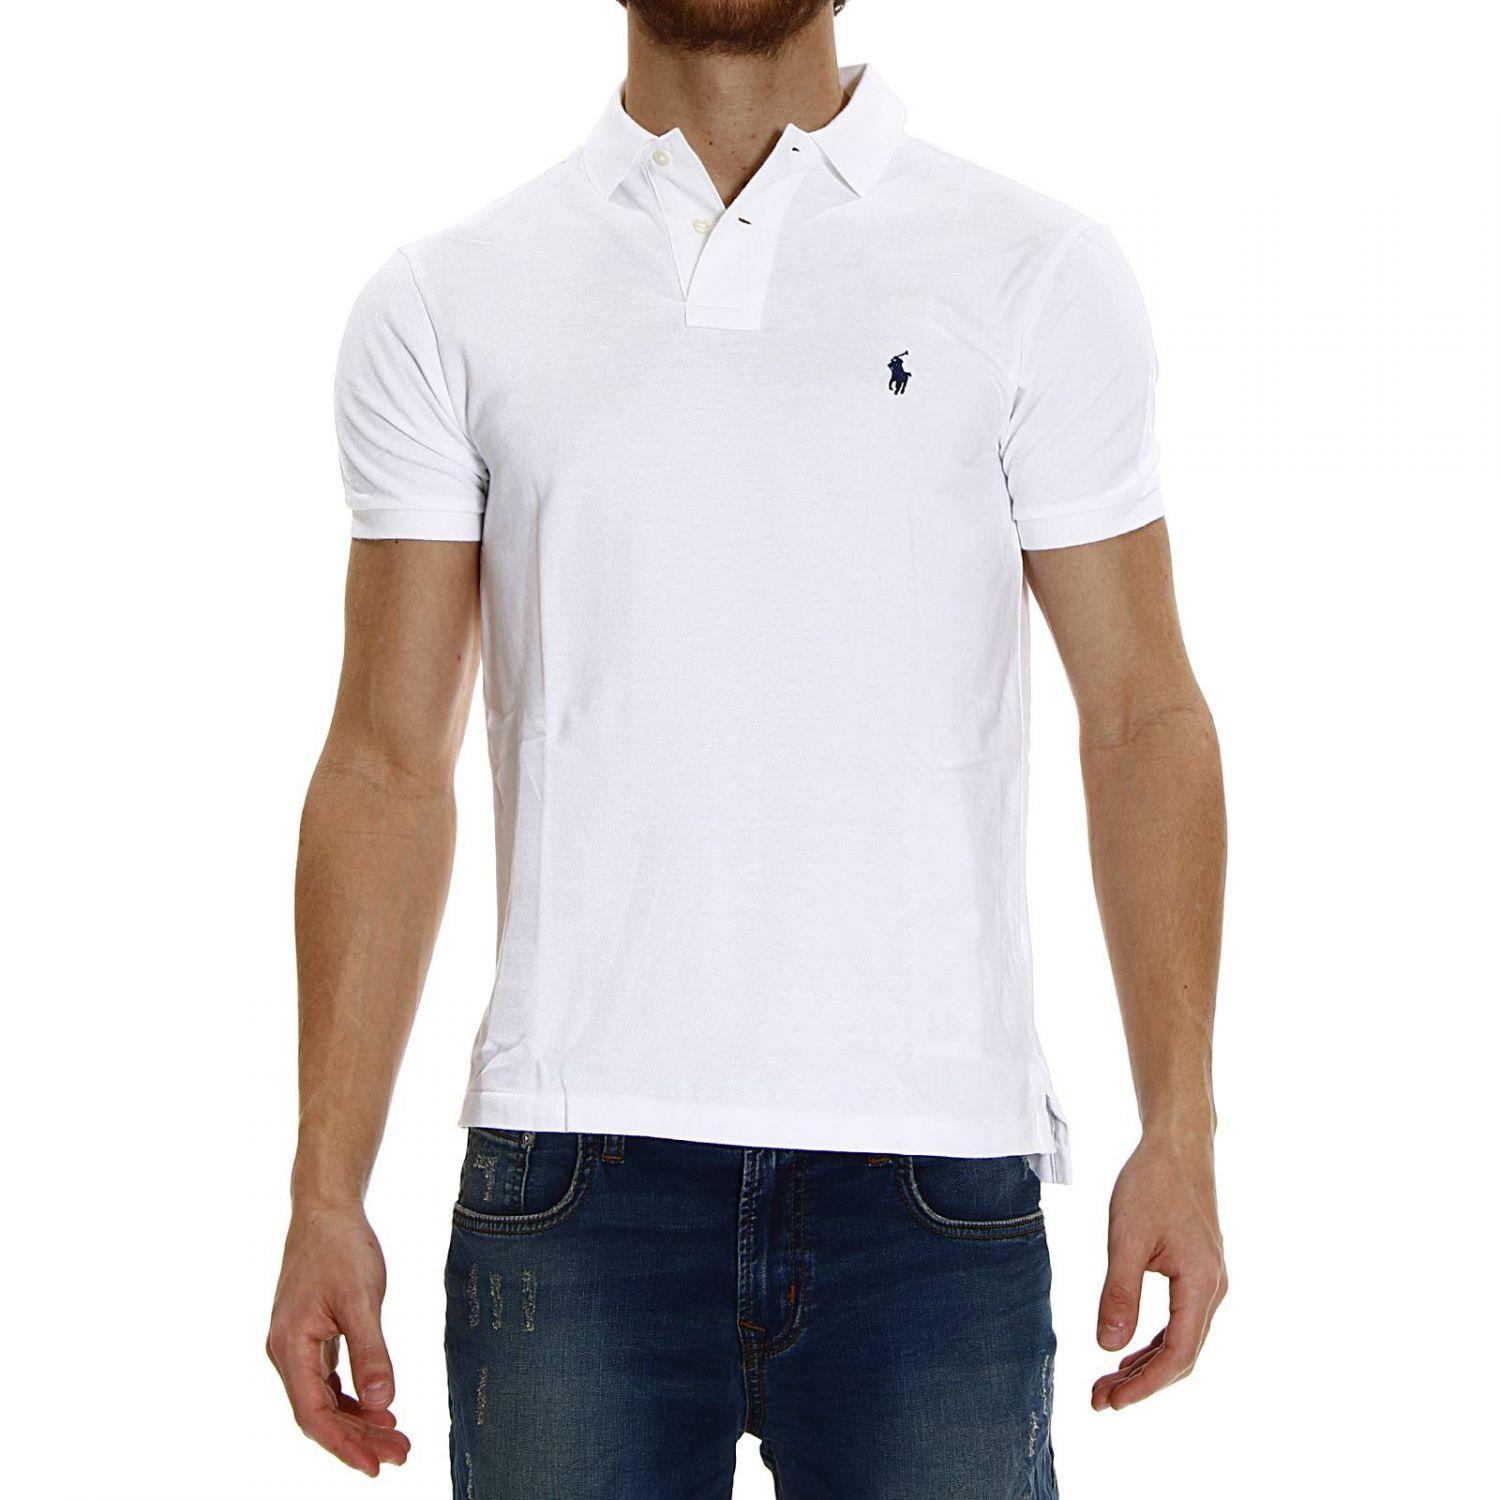 polo ralph lauren short sleeve smocking slim fit polo t shirt in white for men lyst. Black Bedroom Furniture Sets. Home Design Ideas